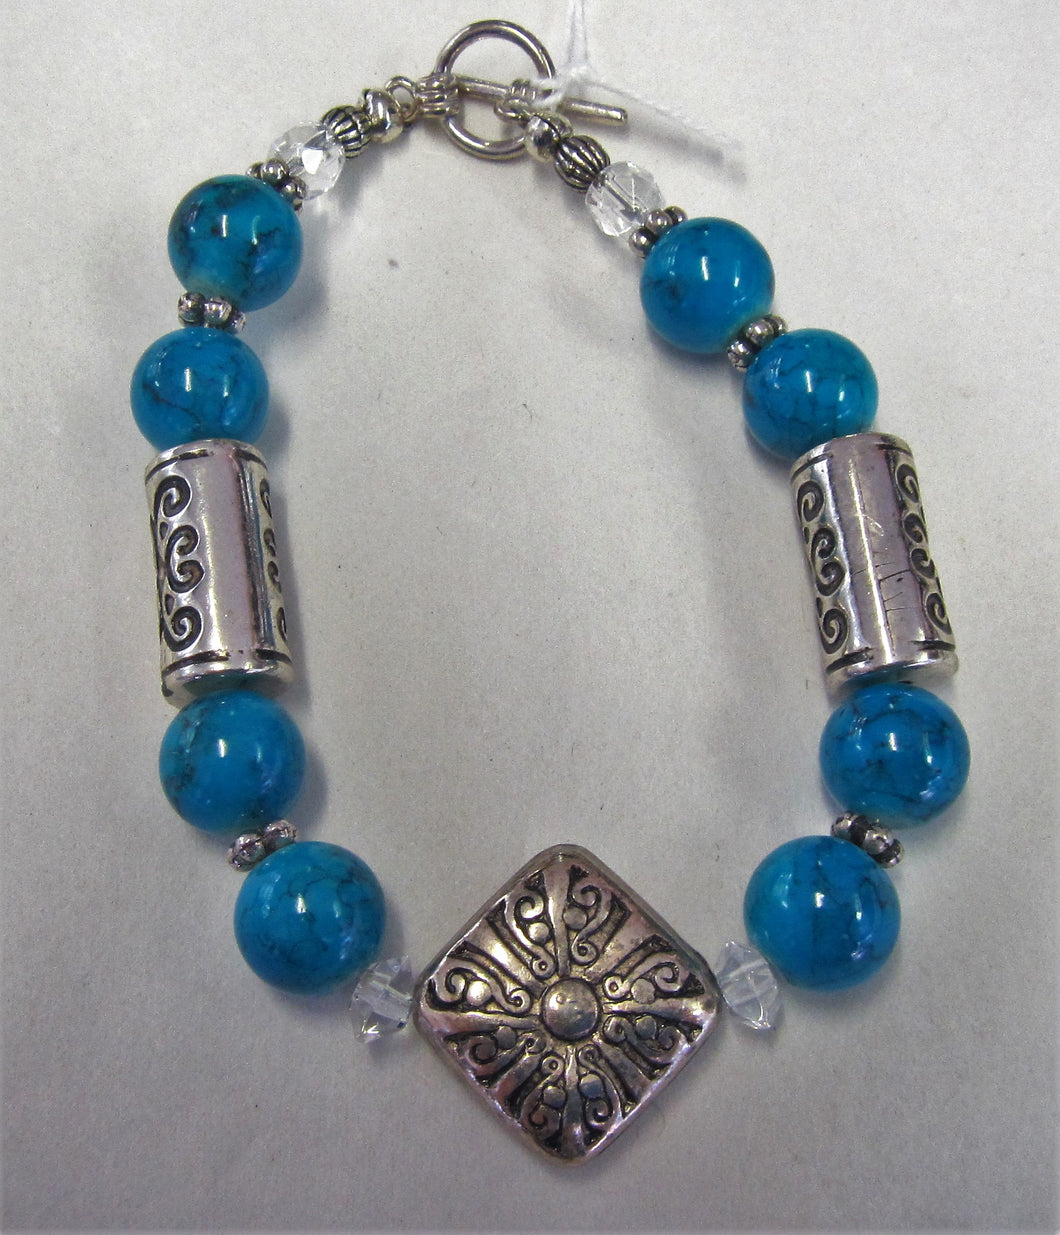 Beaded bracelet - Beautiful handcrafted bracelet with blue and silver patterned beads